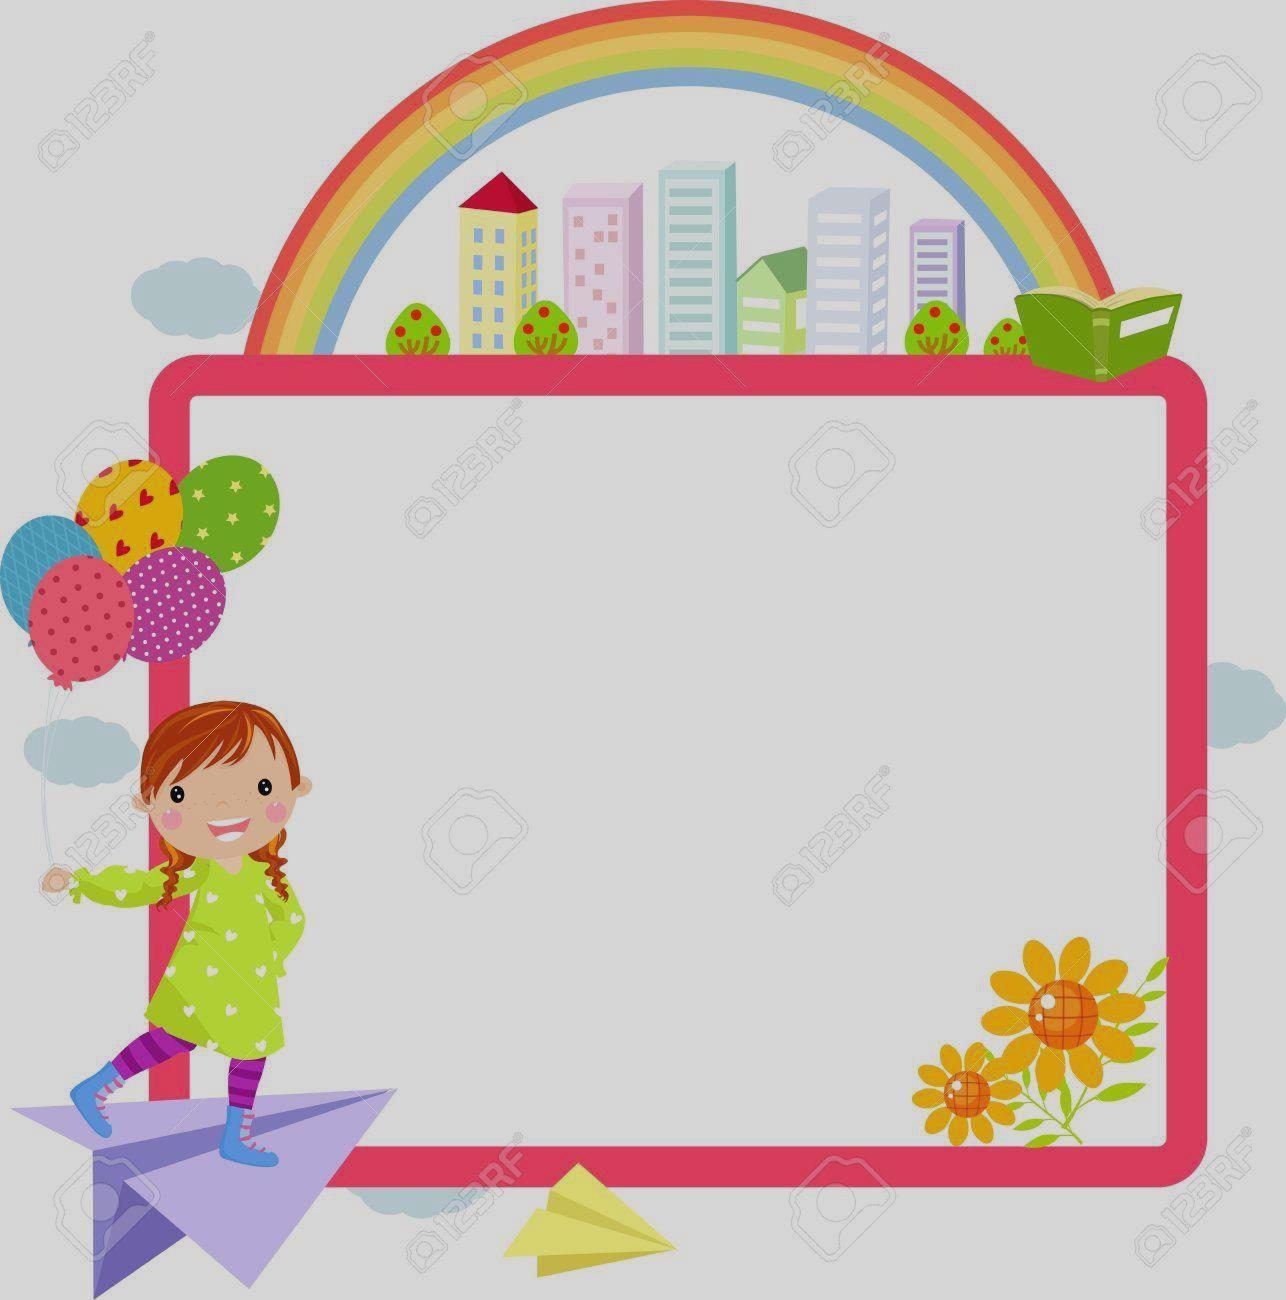 1286x1300 Clip Art Cute Little Girl And Frame Royalty Free Cliparts Vectors